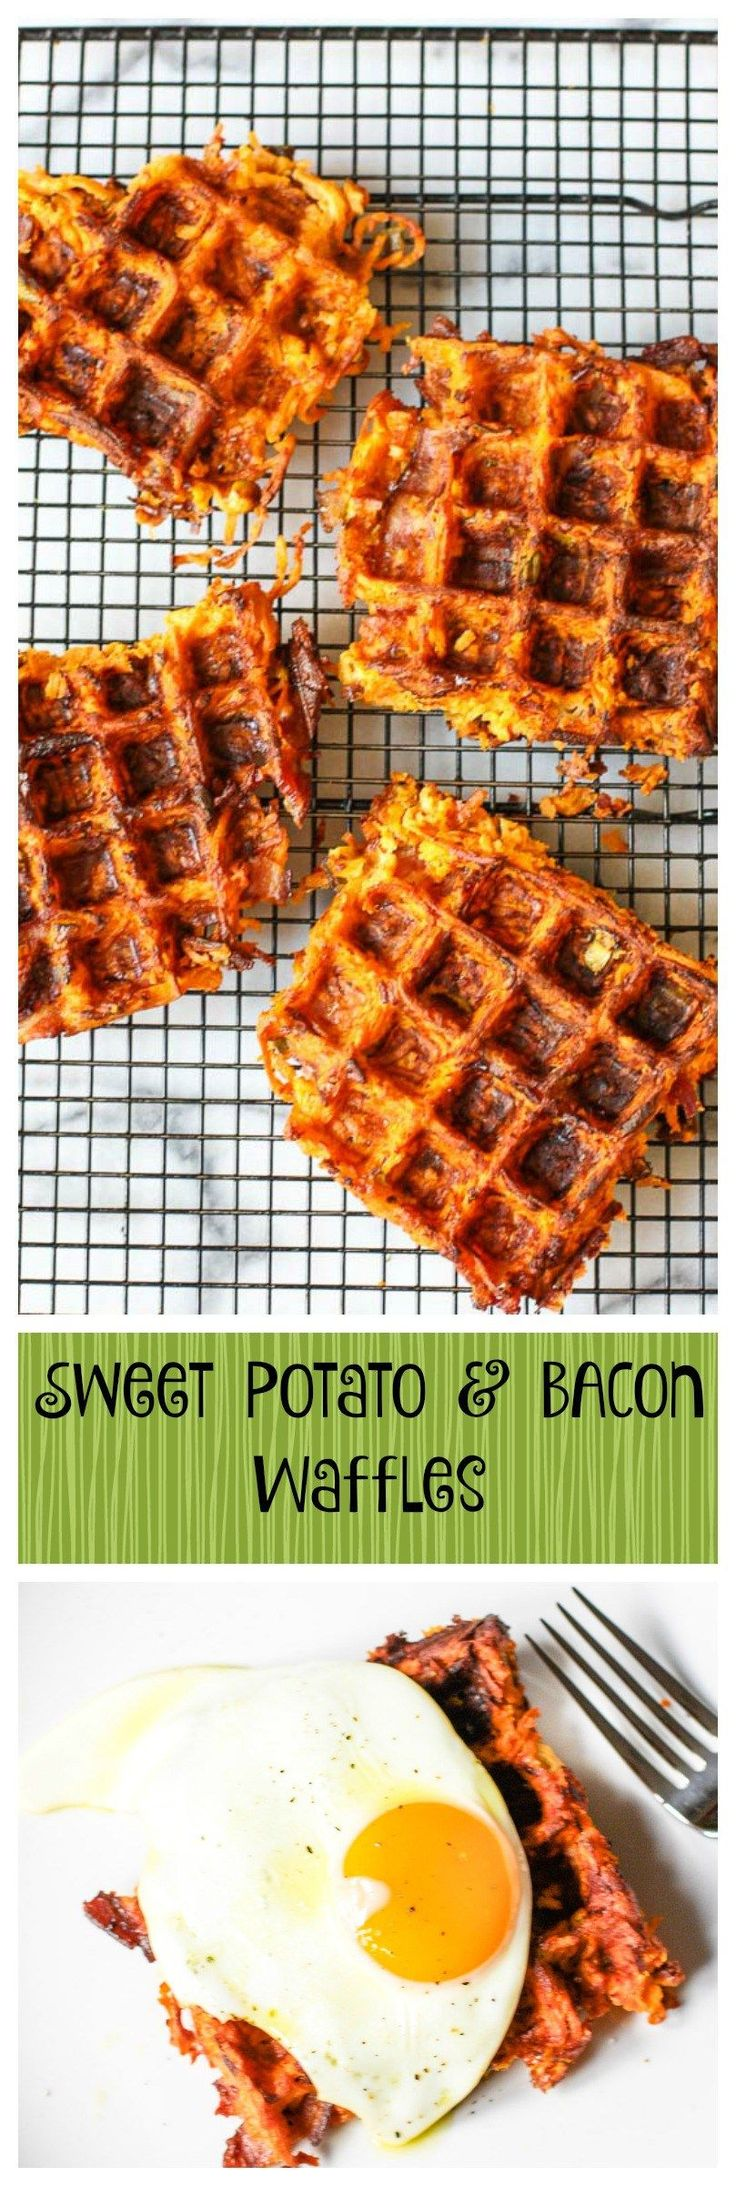 Sweet Potato Bacon Waffles. These are like an awesome sweet potato hash in waffle form... this recipe will help your digestion and make you smile... so good and so healthy!